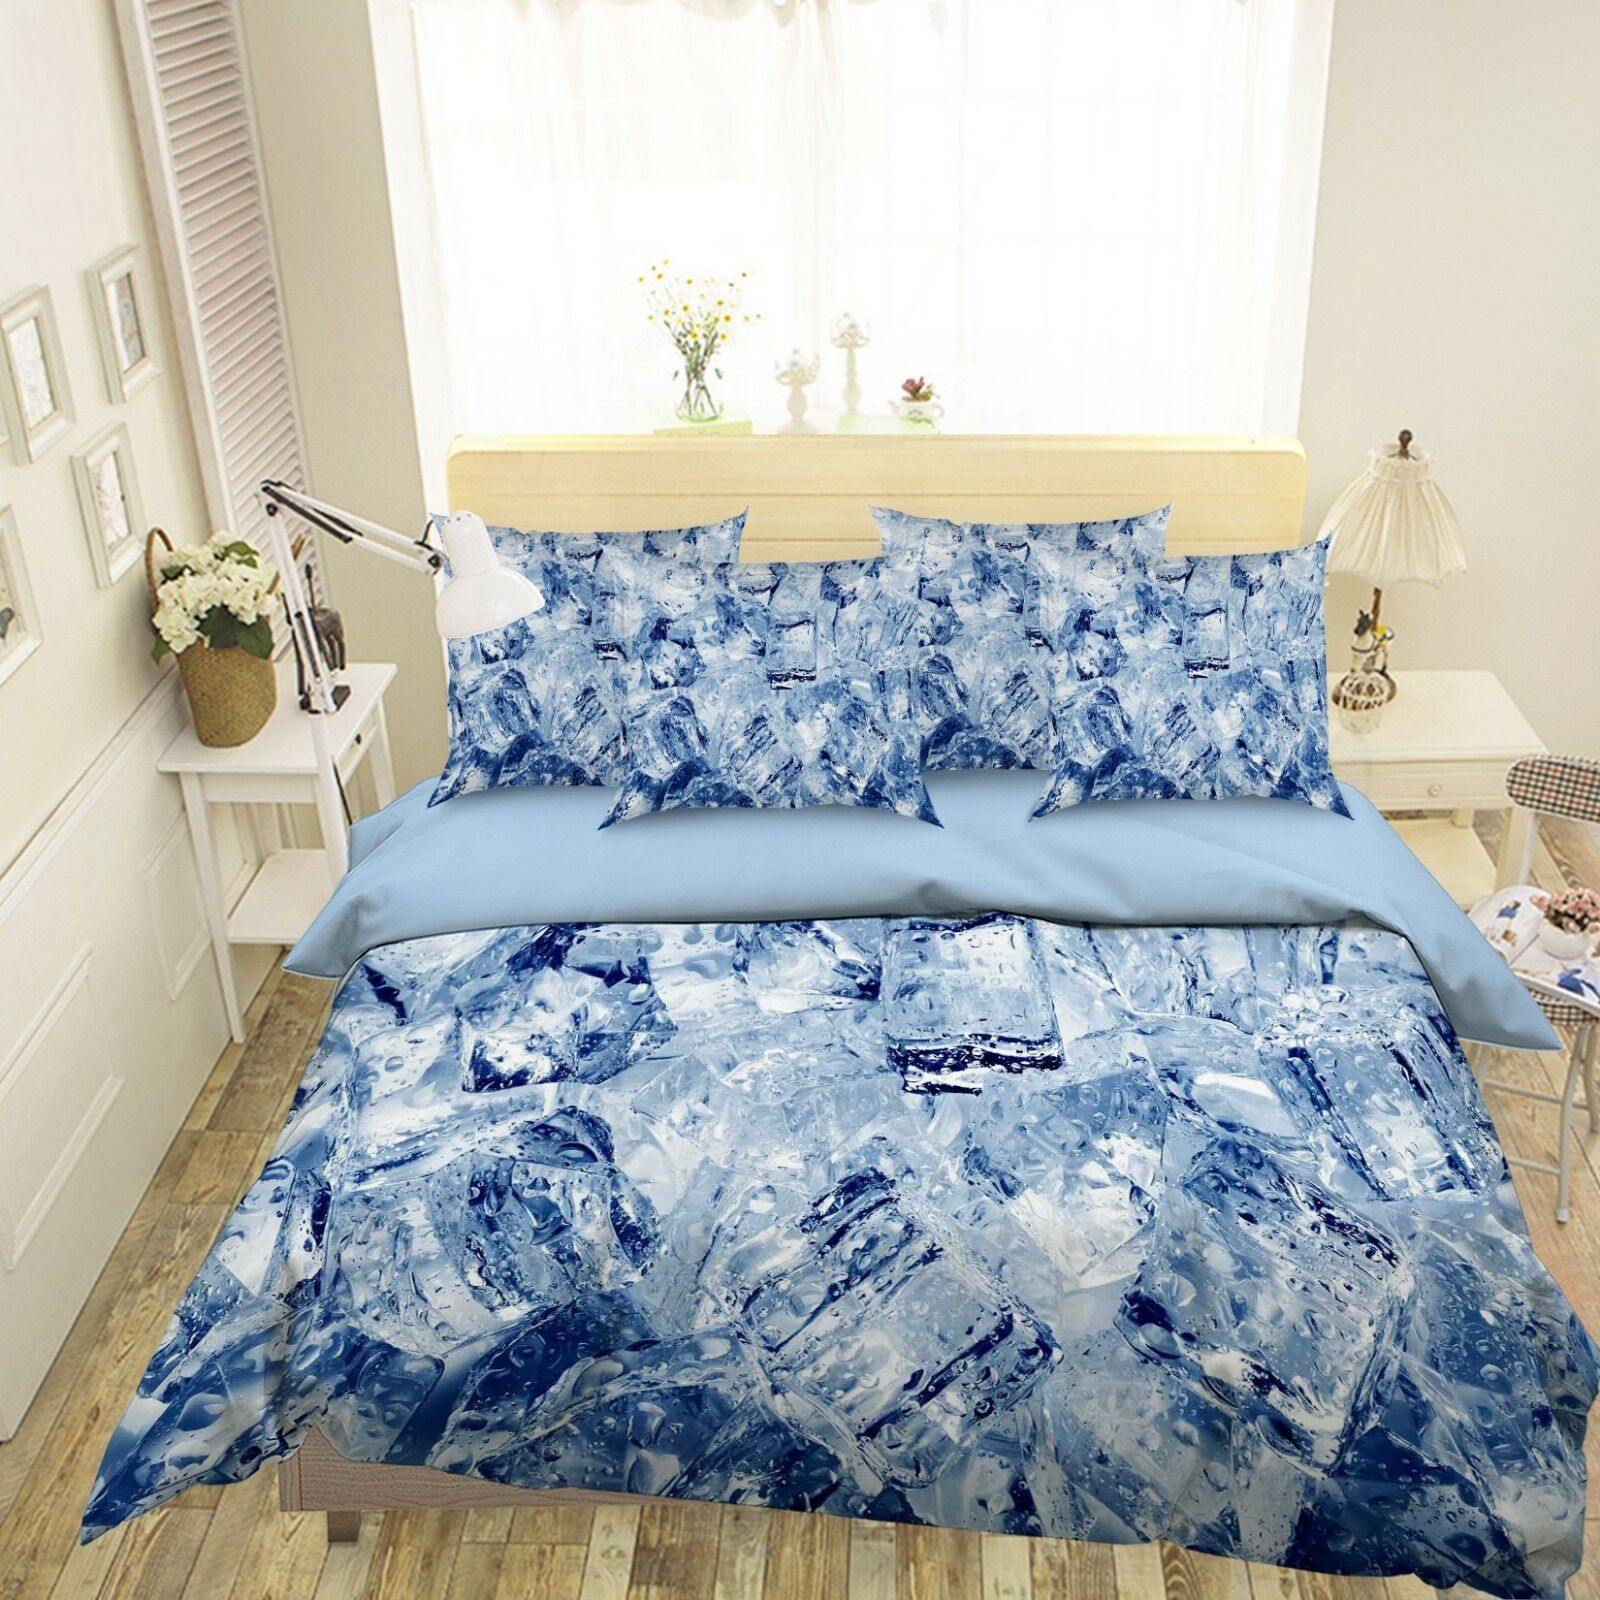 3D Ice Cube Pattern 26 Bed Pillowcases Quilt Duvet Single Queen King US Summer